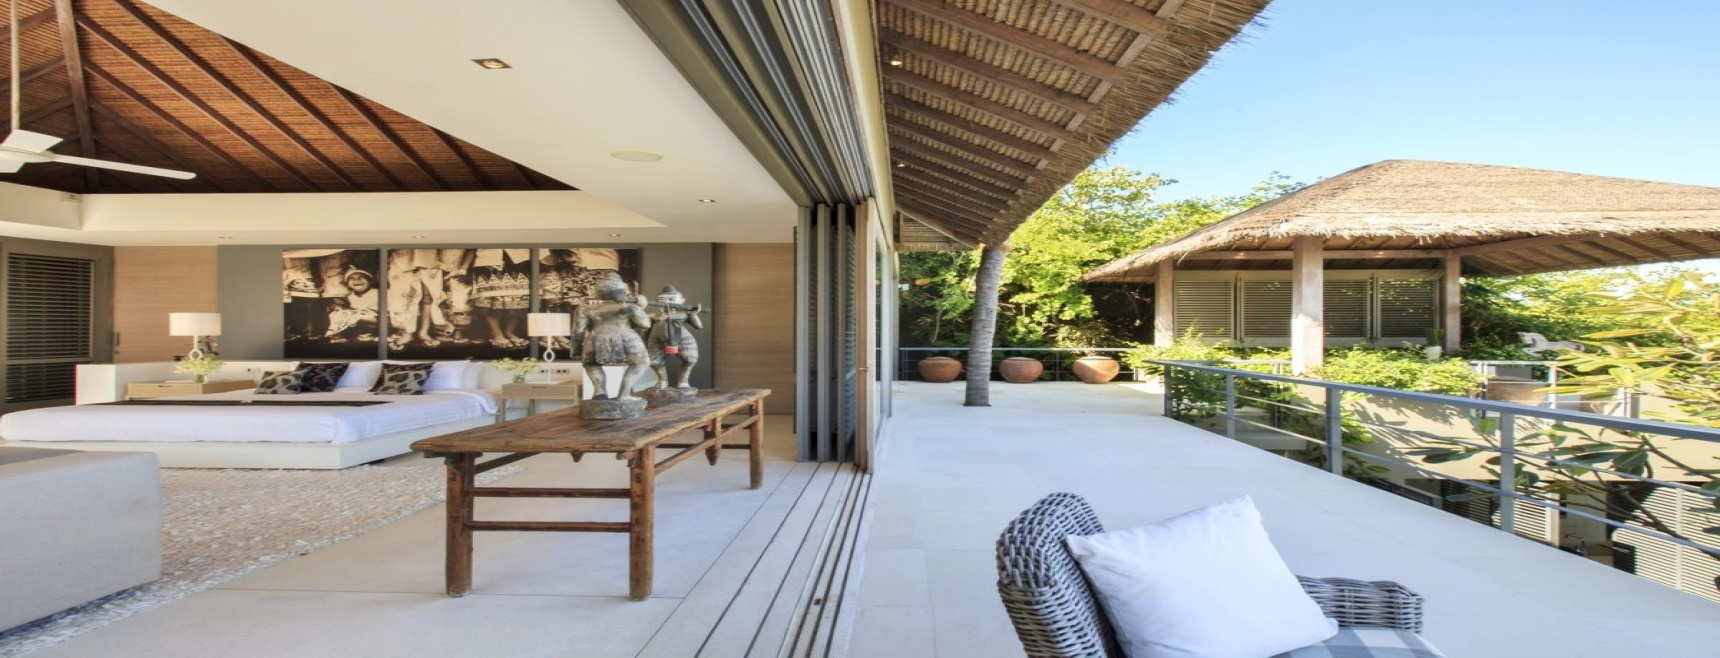 Ultra-stylish architectural designs and natural elegance